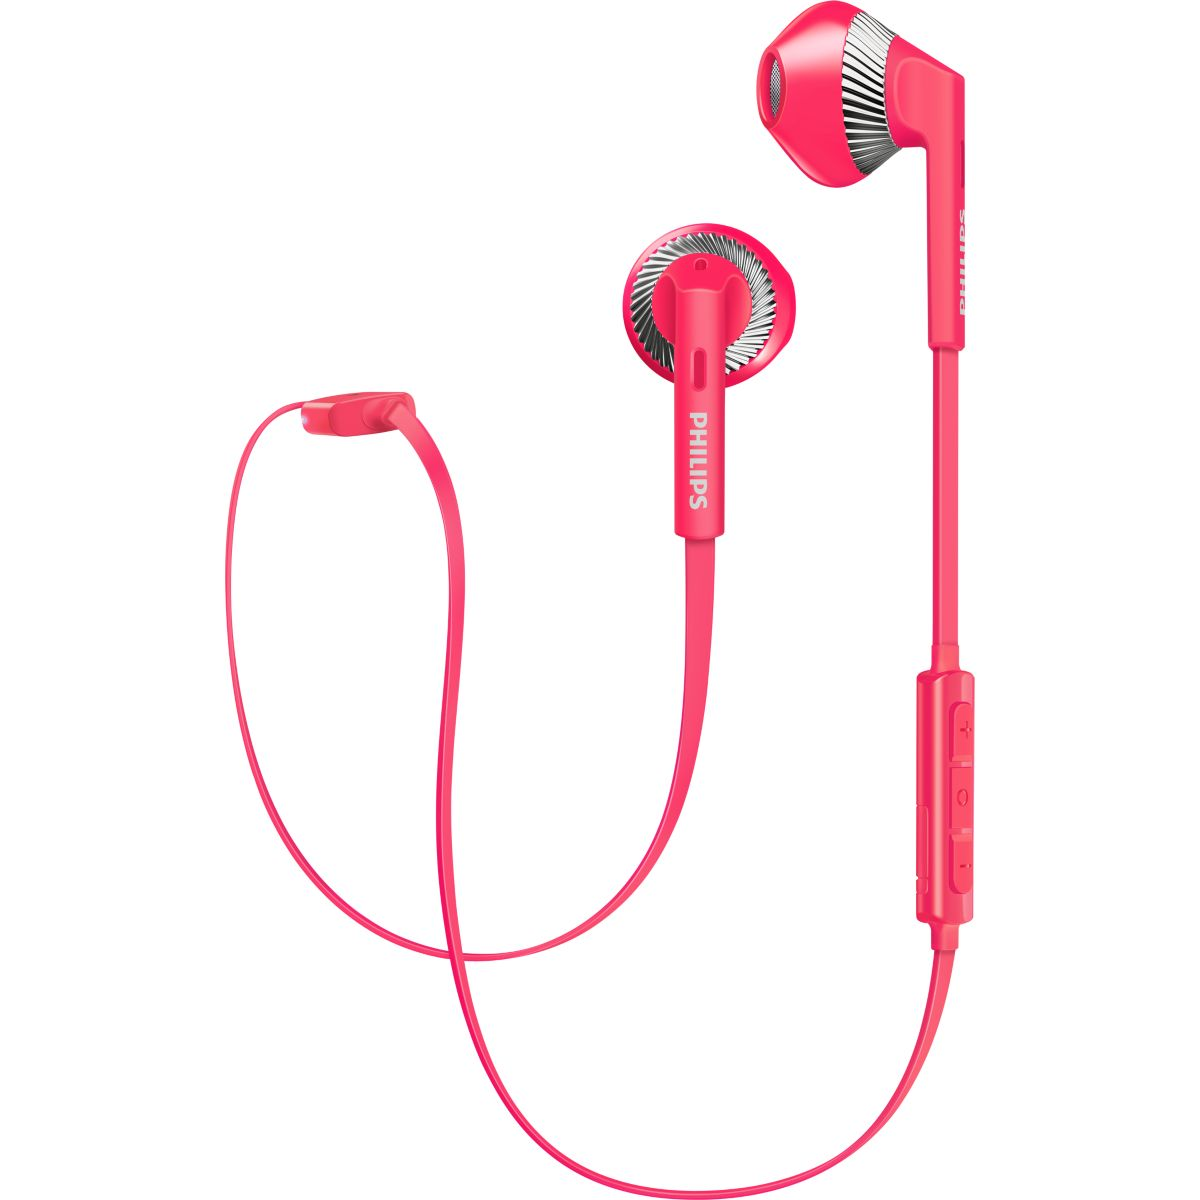 Ecouteurs PHILIPS SHB5250 rose